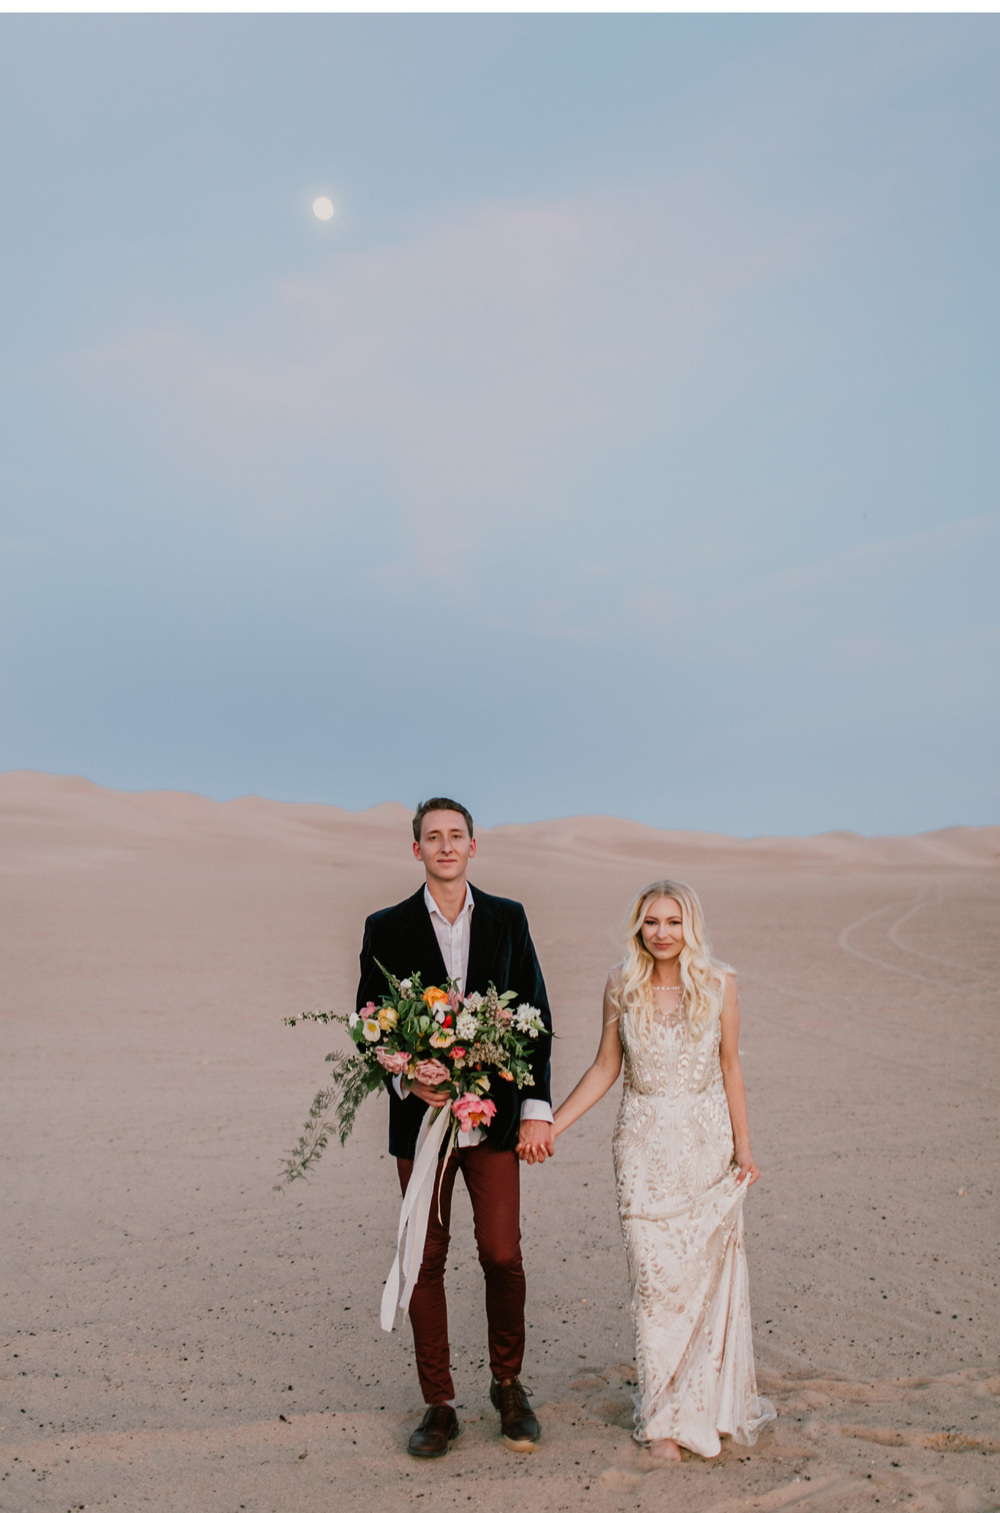 Desert-Wedding-Free-People-Wedding-Natalie-Schutt-Photography_12.jpg